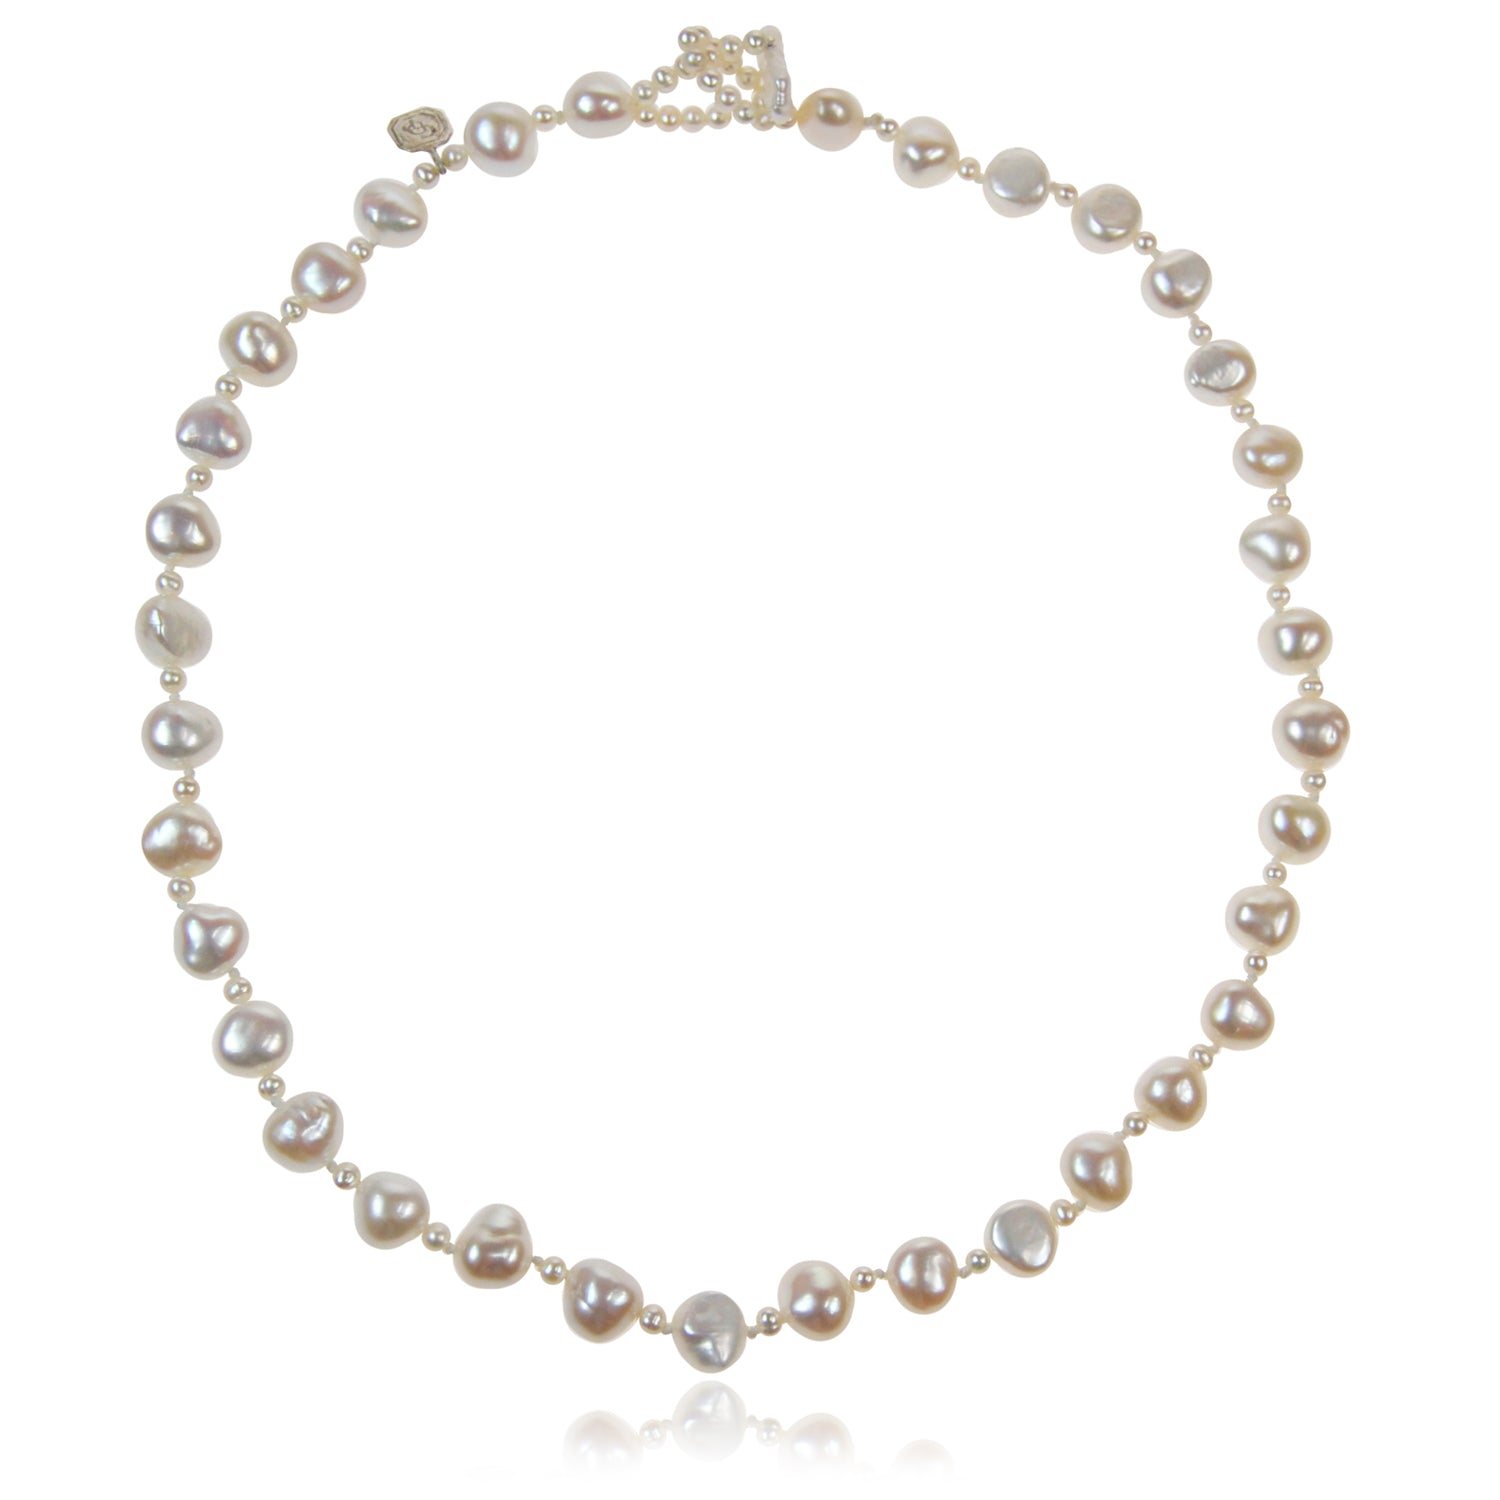 Single Strand Biwa and Seed Pearl Necklace in White